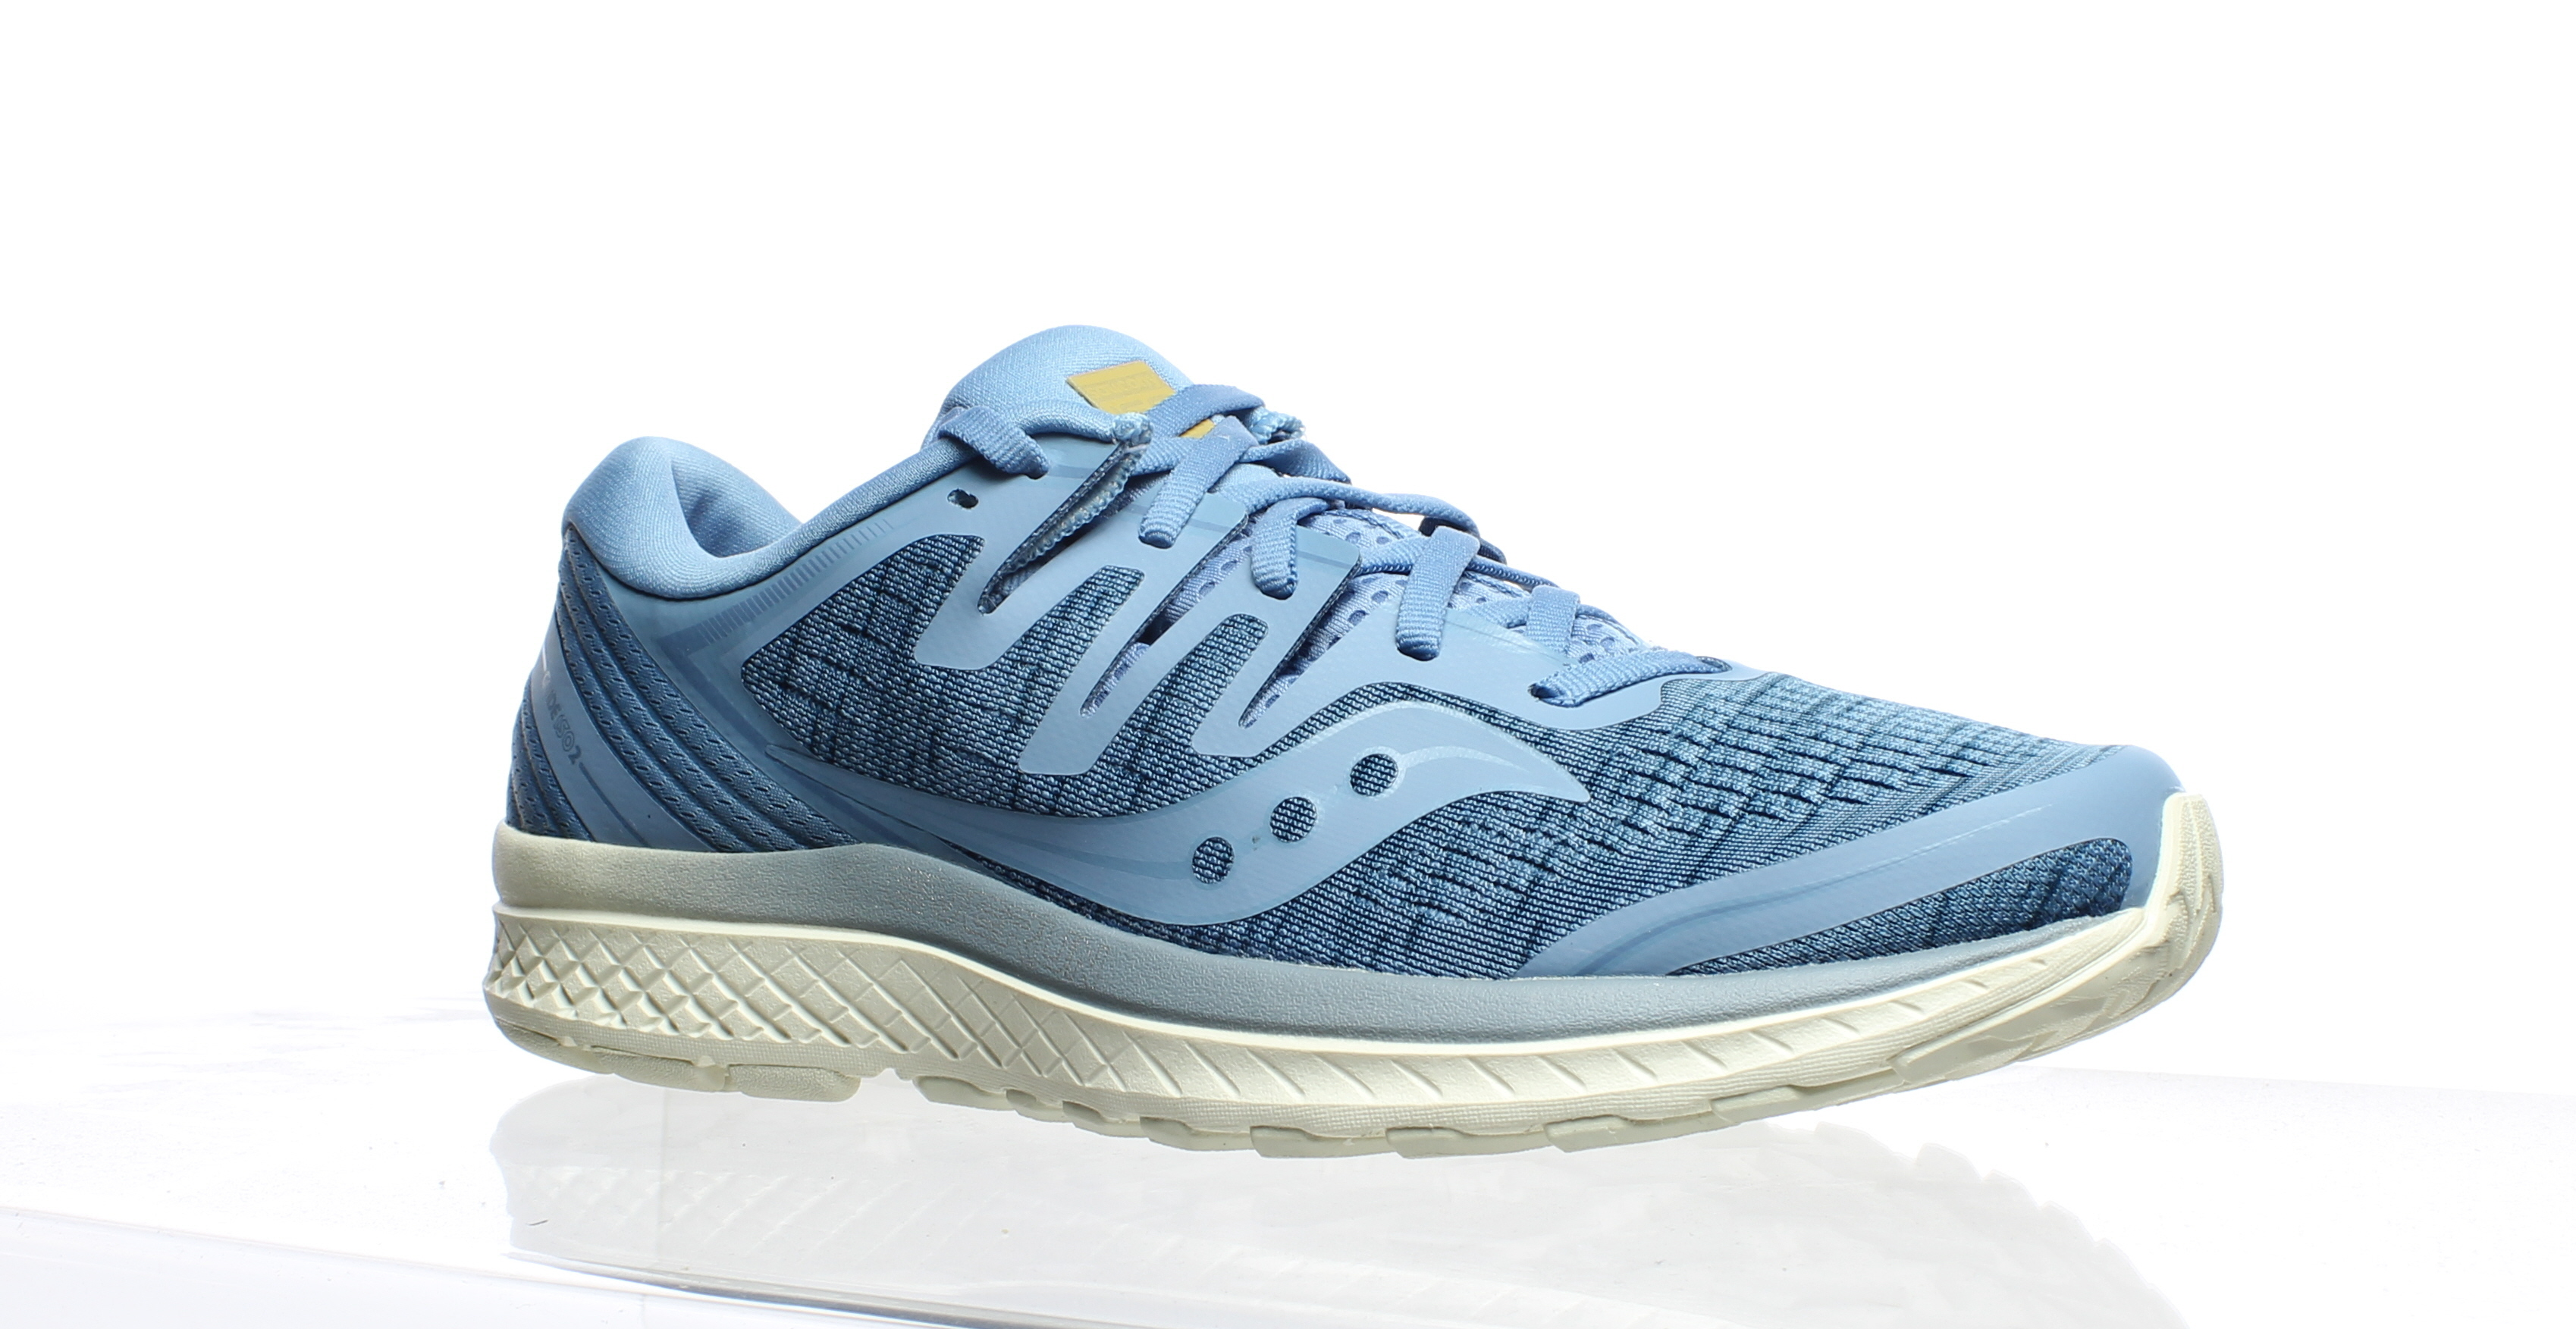 20f96ecd1b Saucony Womens Guide Iso 2 Blue Shade Running Shoes Size 10 (299355 ...